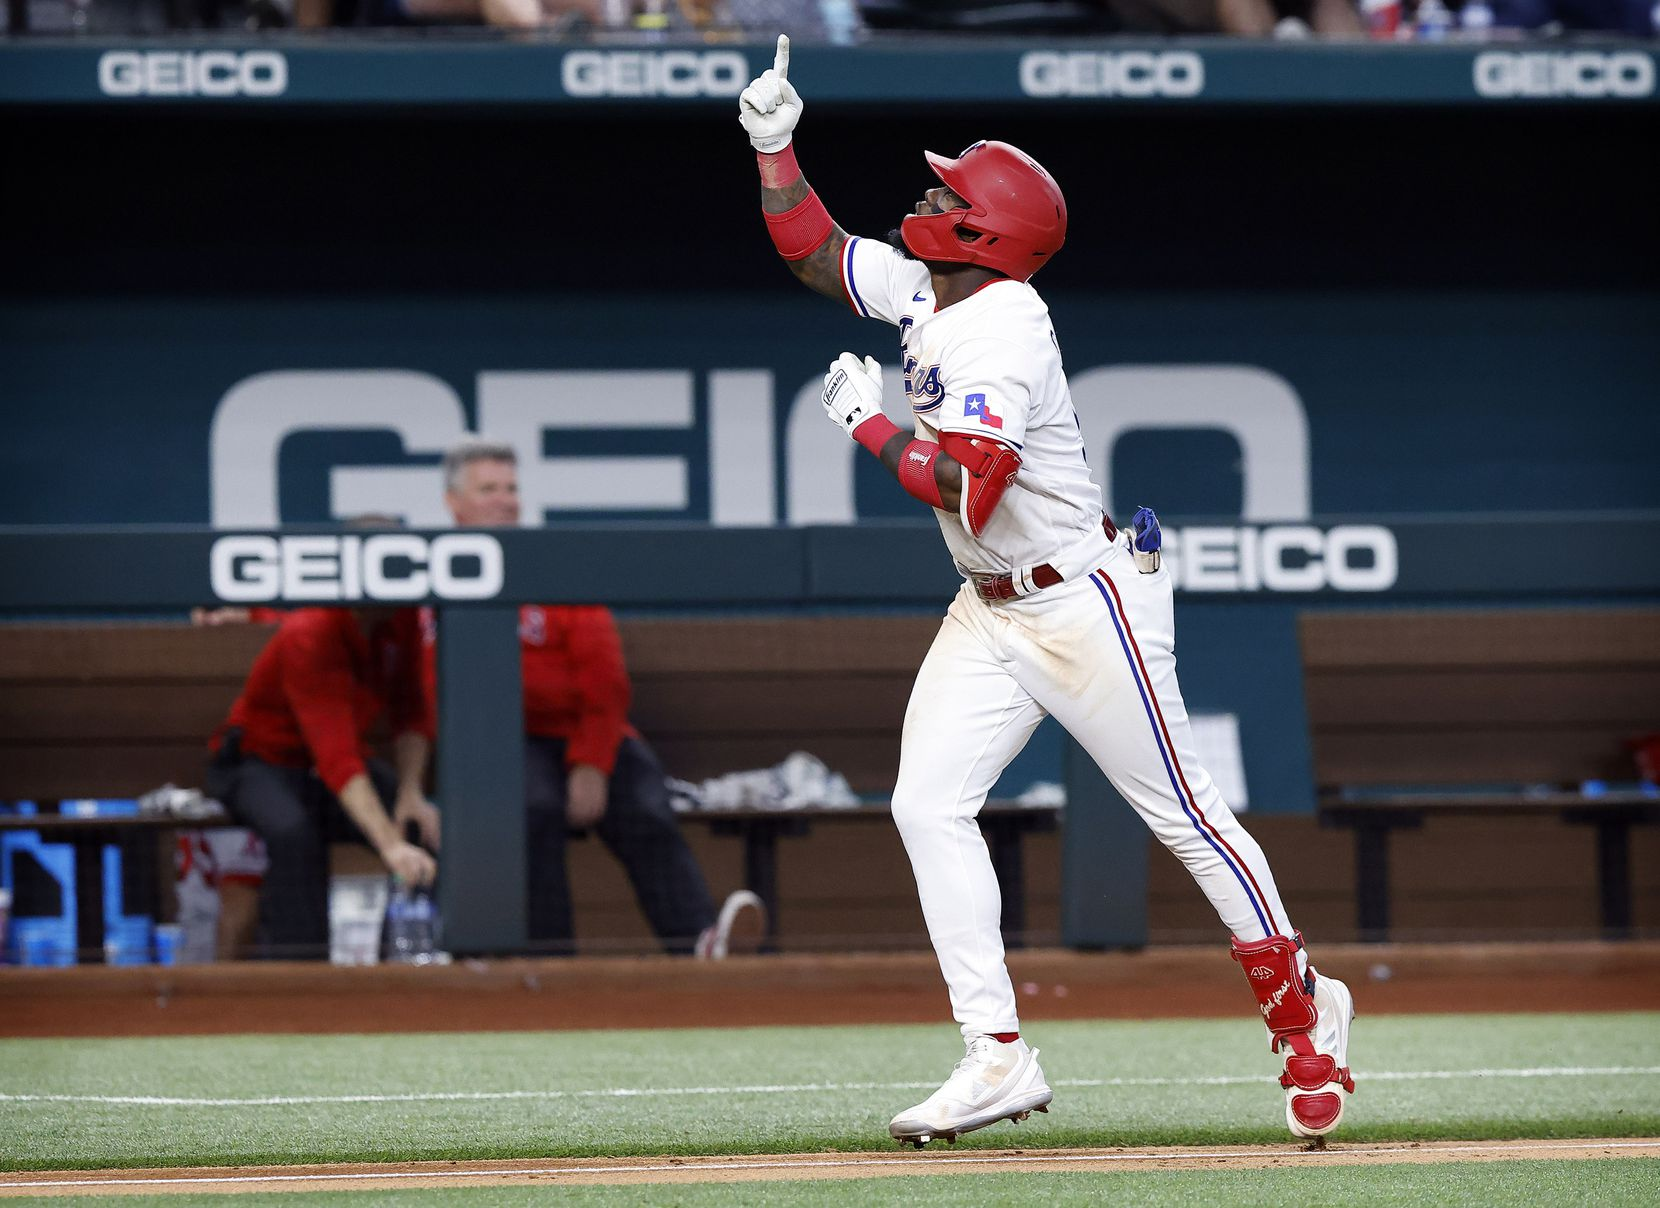 Texas Rangers batter Adolis Garcia points skyward as he heads for home on a two-run homer, a new Rangers rookie record for home runs and RBIs, during the fifth inning against the Los Angeles Angels at Globe Life Field in Arlington, Texas, Thursday, September 30, 2021. (Tom Fox/The Dallas Morning News)